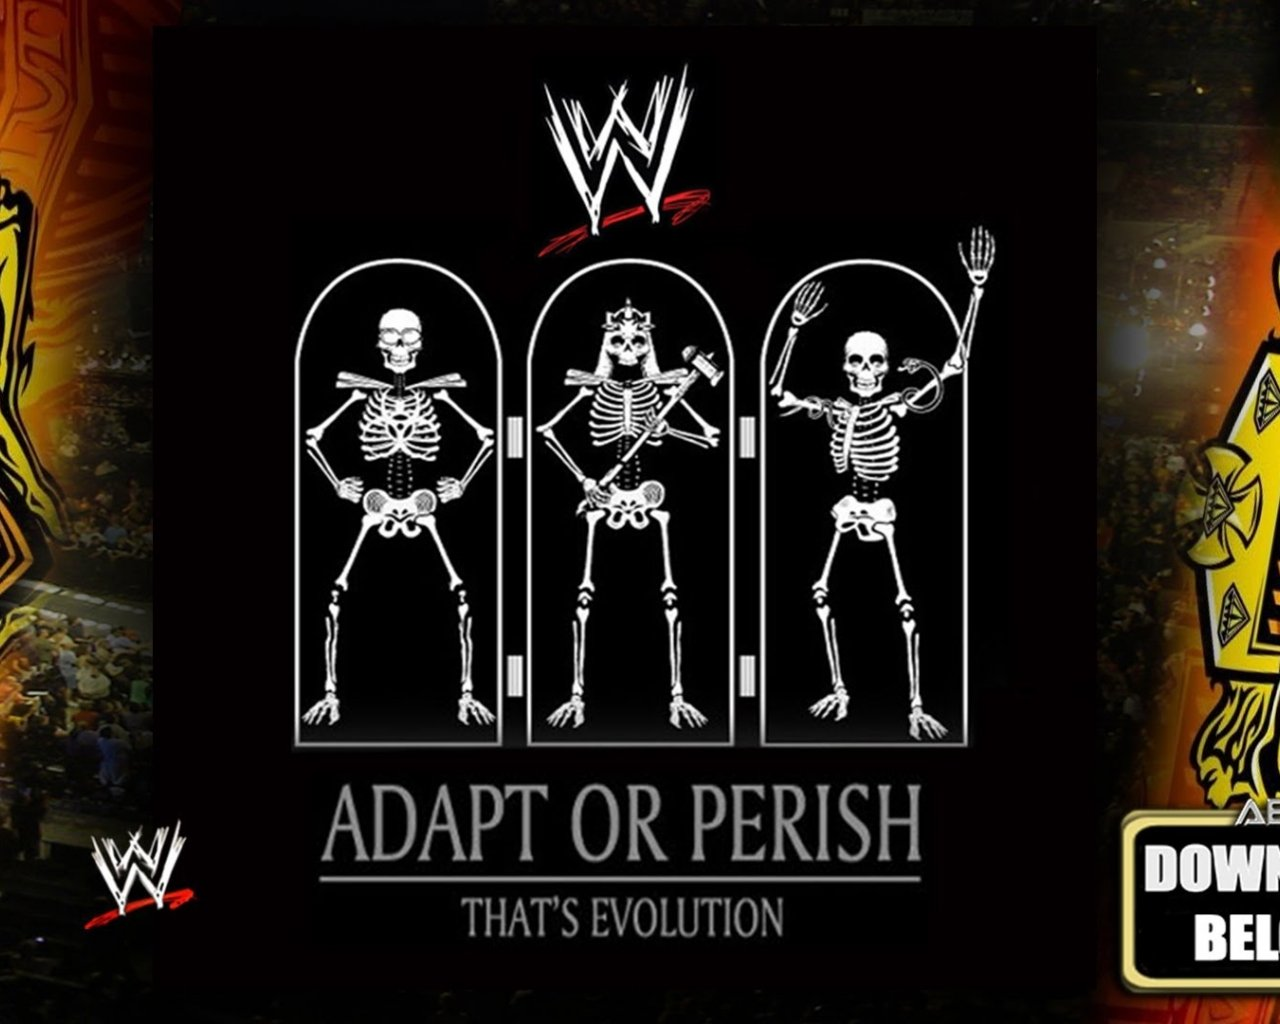 download WWE Evolution [Adapt Or Perish] Arena Effect [Full 1280x1024